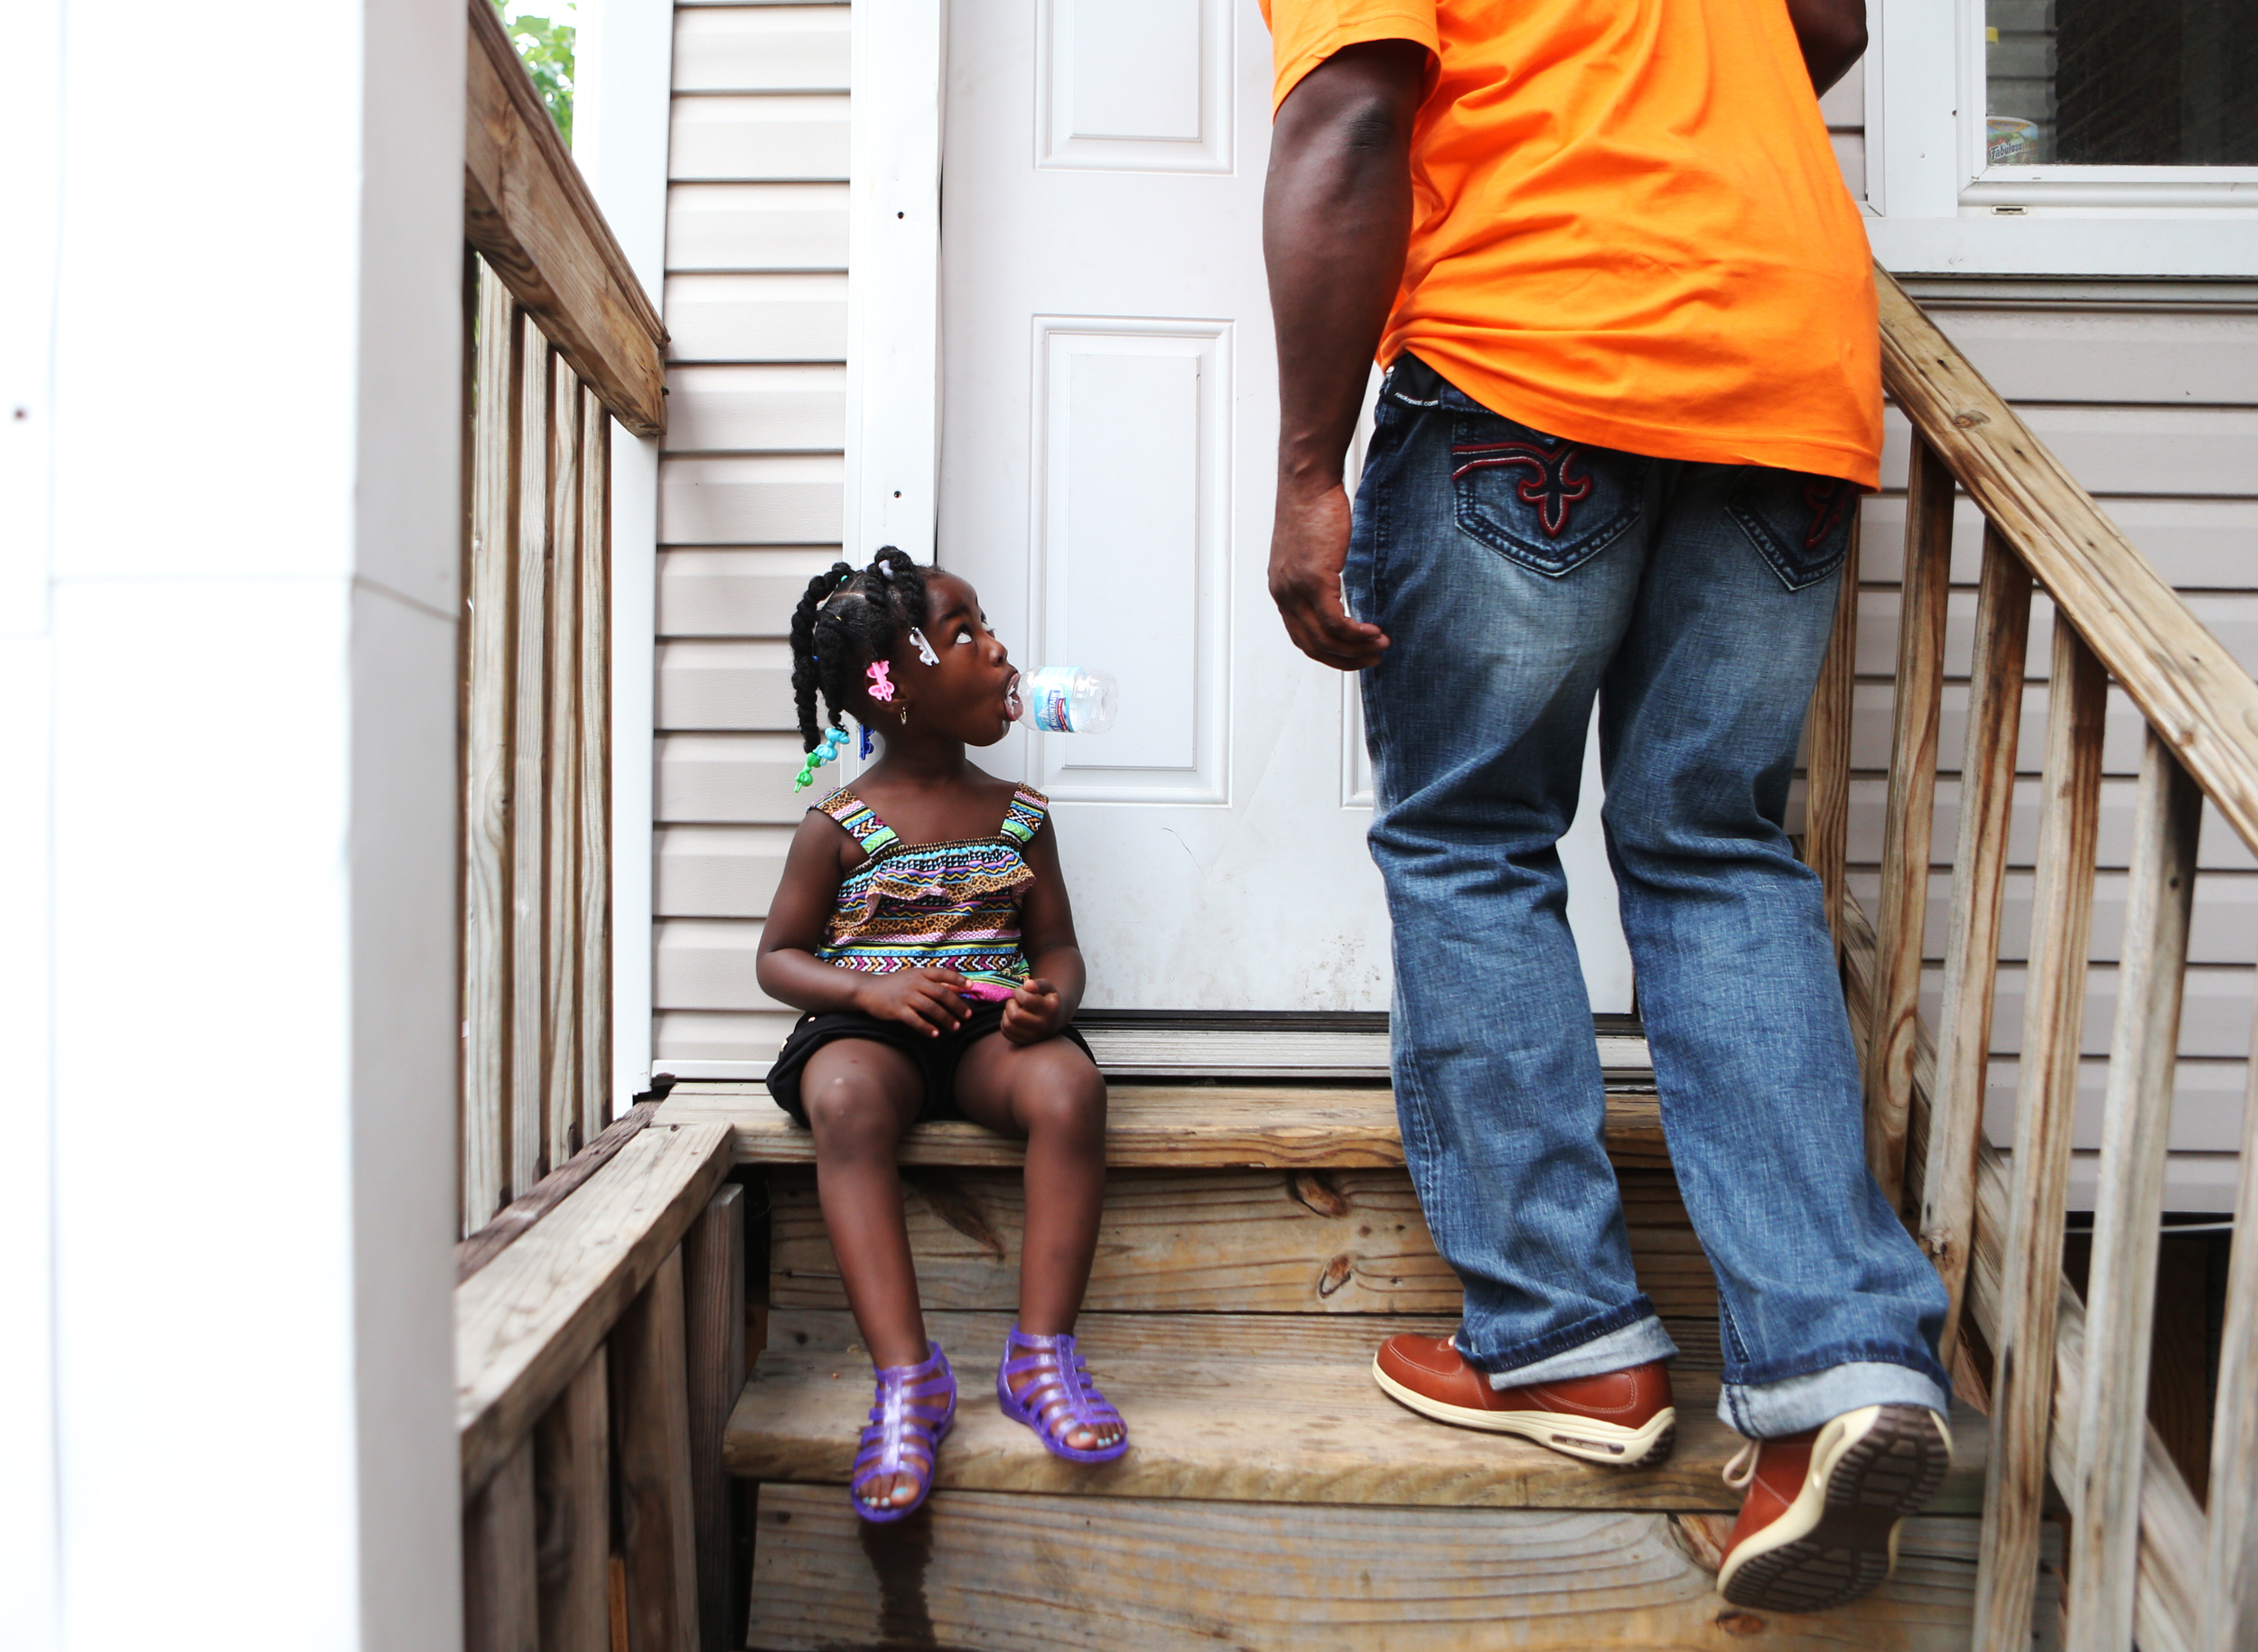 One of Daniel's many nieces, Kay-Kay Davis, 2, looks up at him as he passes into his Aunt Marie's house on Thursday, July 4, 2013. She was born while Daniel was incarcerated, so she does not know that he is her uncle.